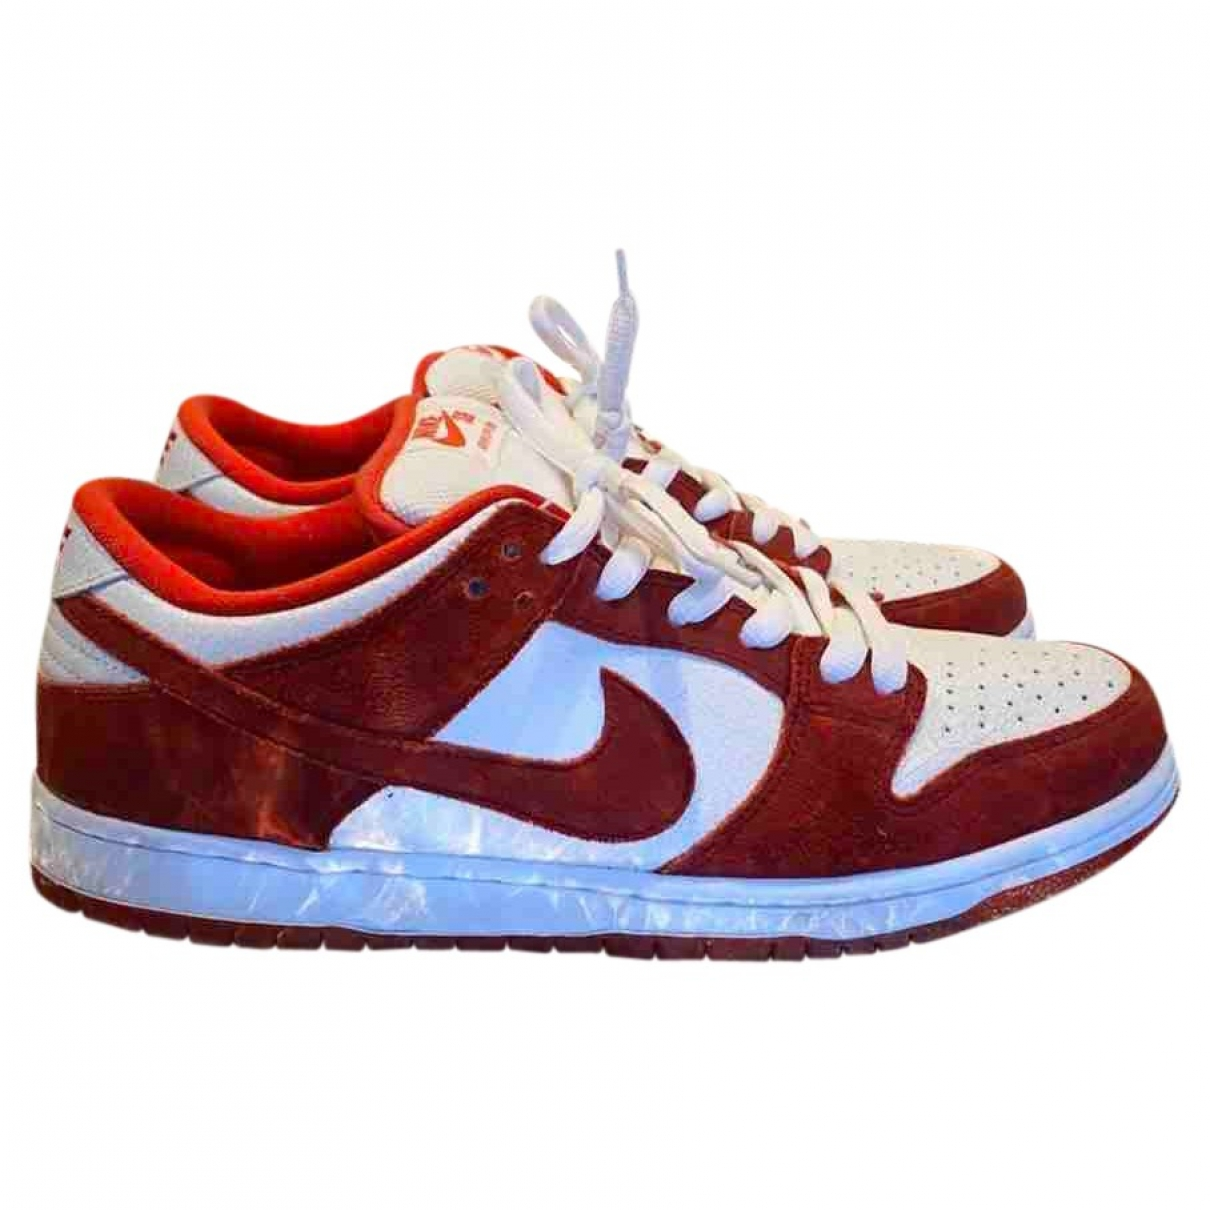 Nike SB Dunk  Red Suede Trainers for Men 45 EU